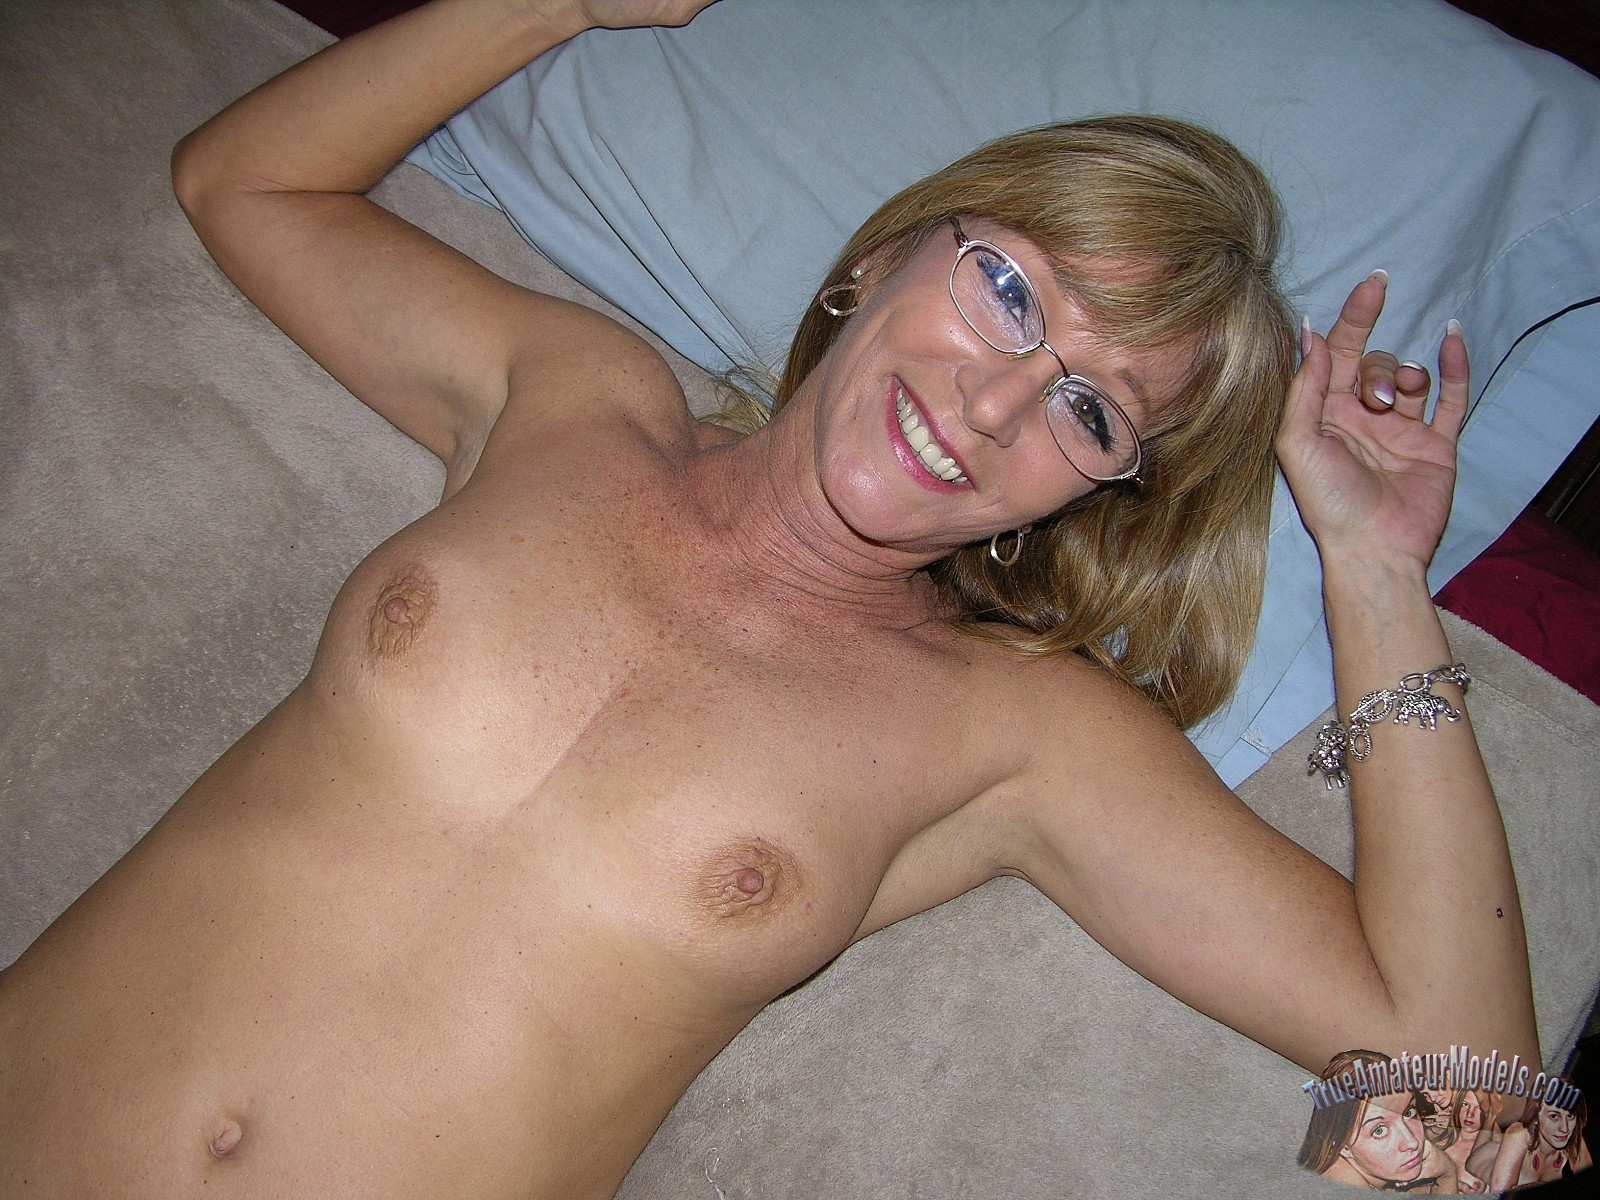 Milf amateur massage